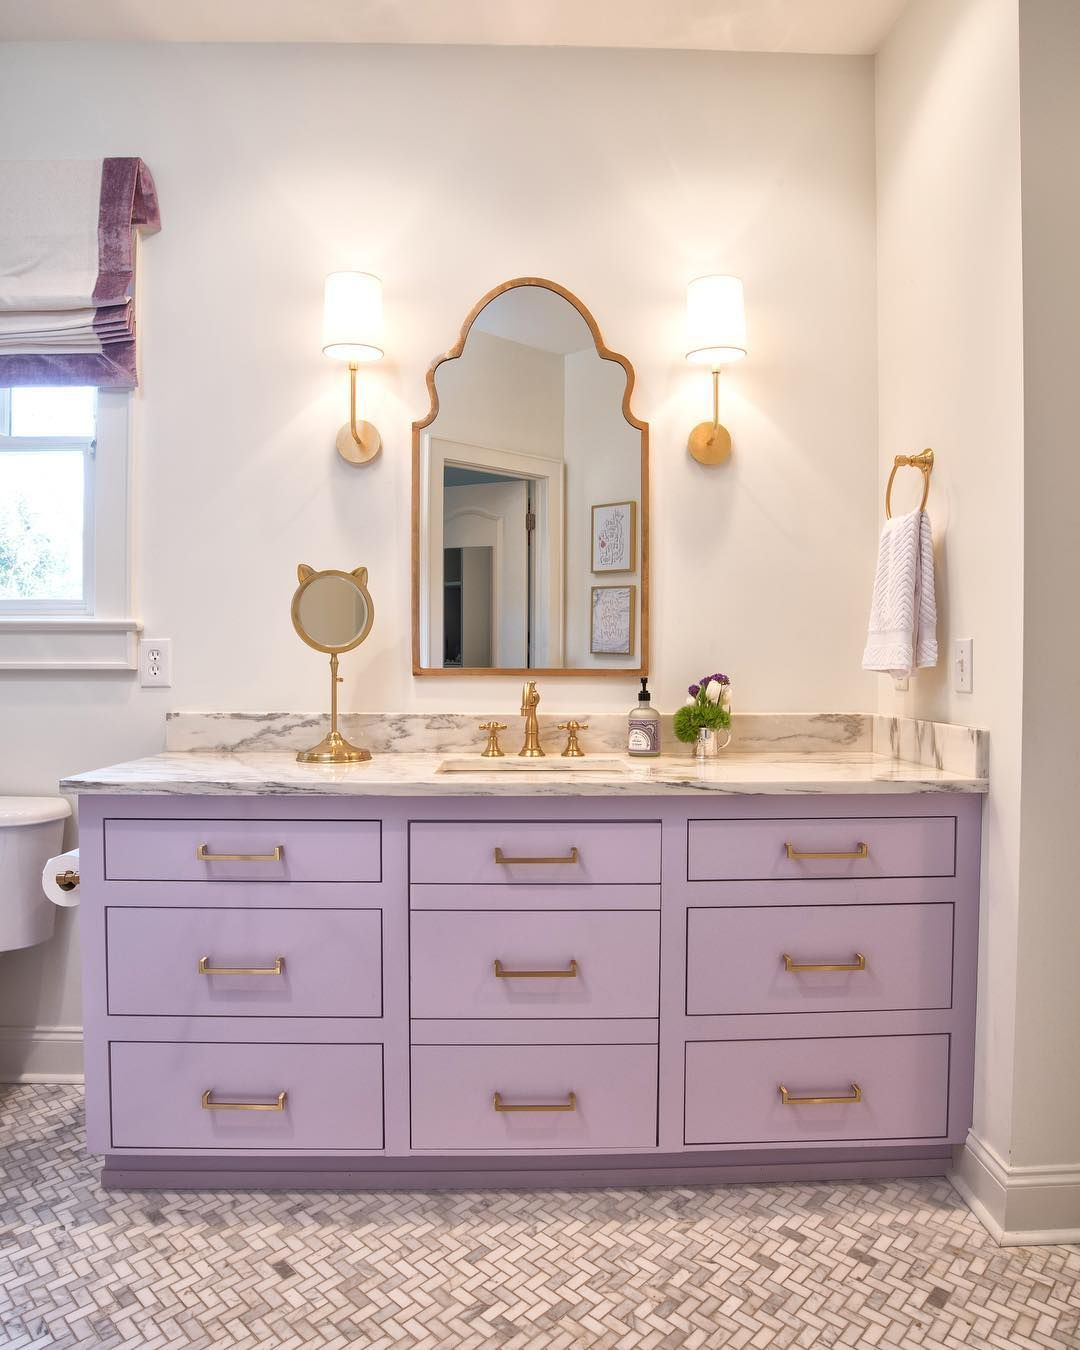 Bathroom, Bathroom Ideas, Girls Bathroom, Bathroom Vanity